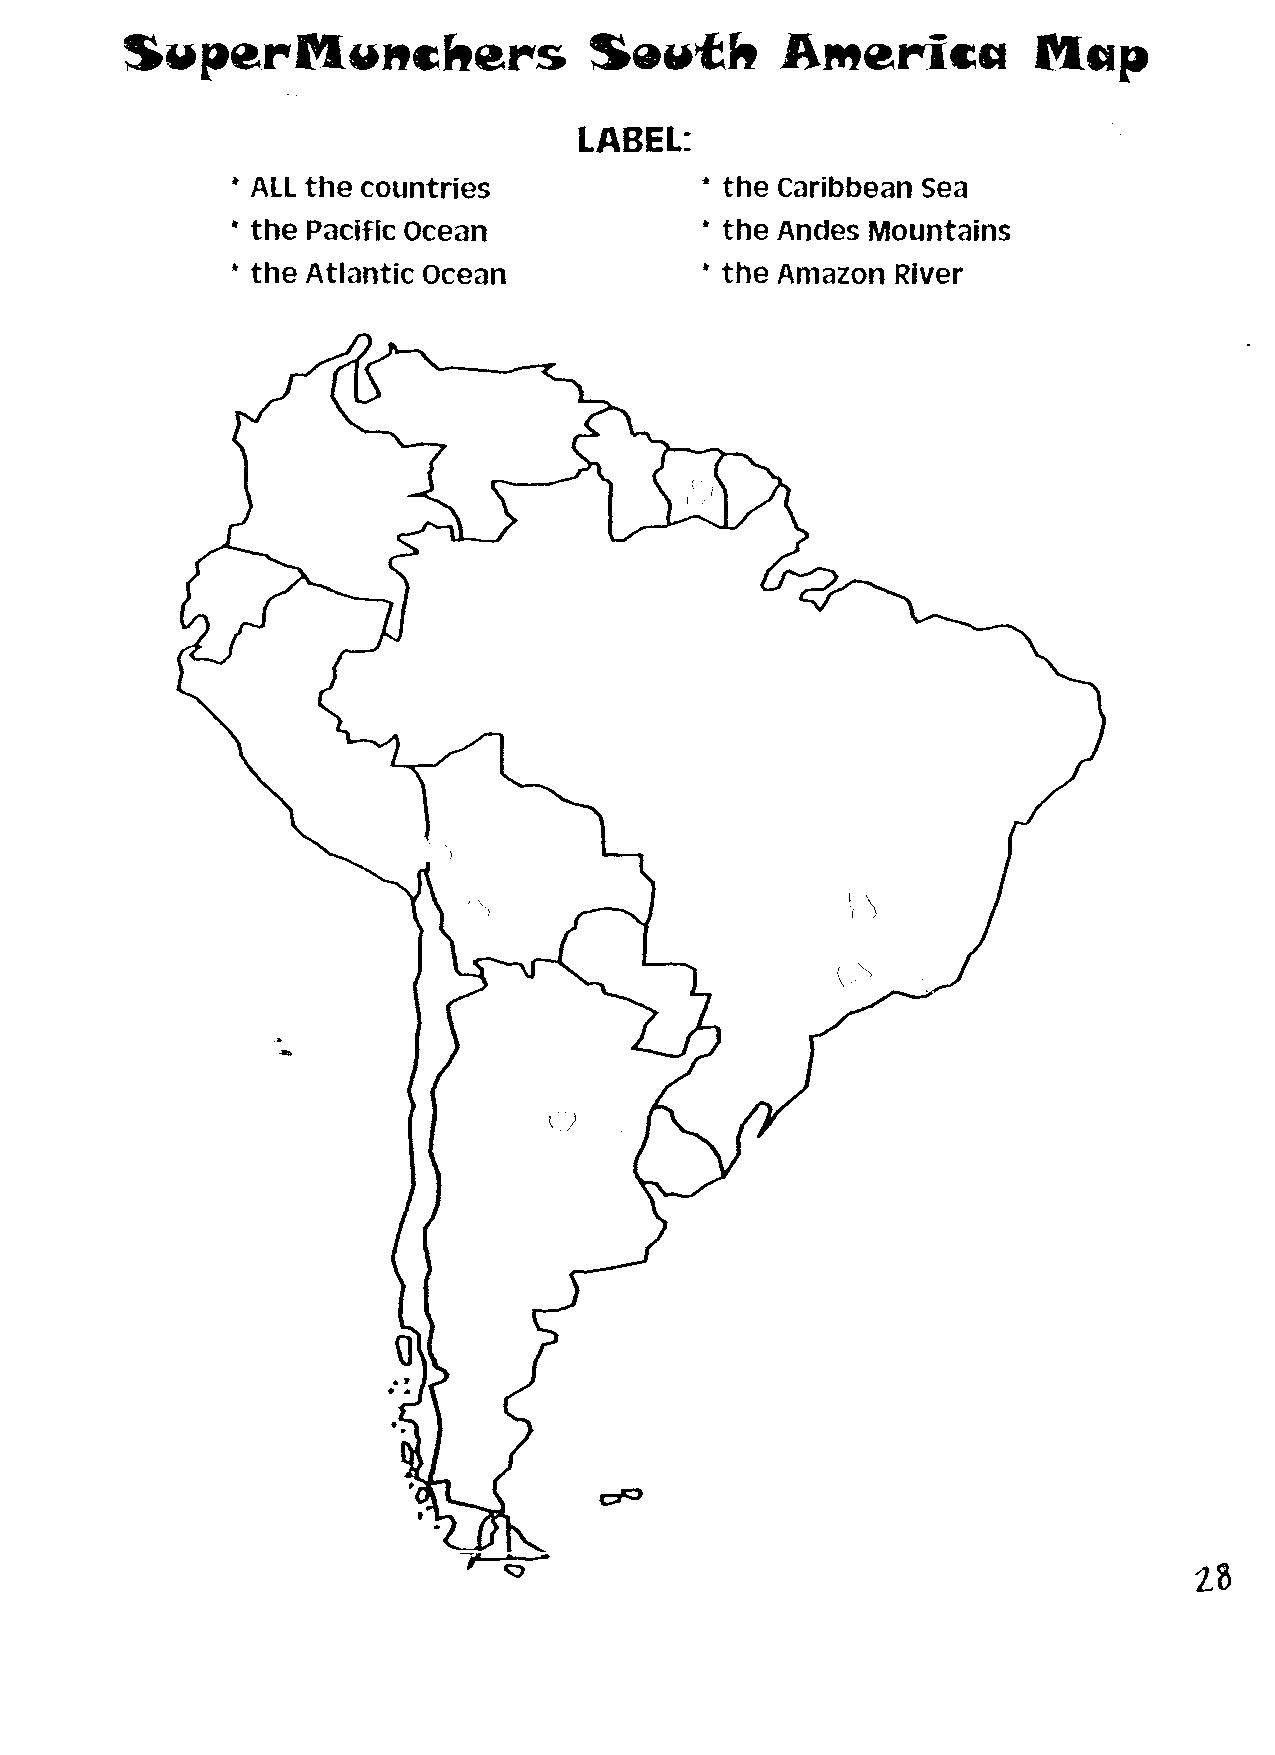 south america map activity 5d Supermunchers South America Map Uc Links Activity Guides